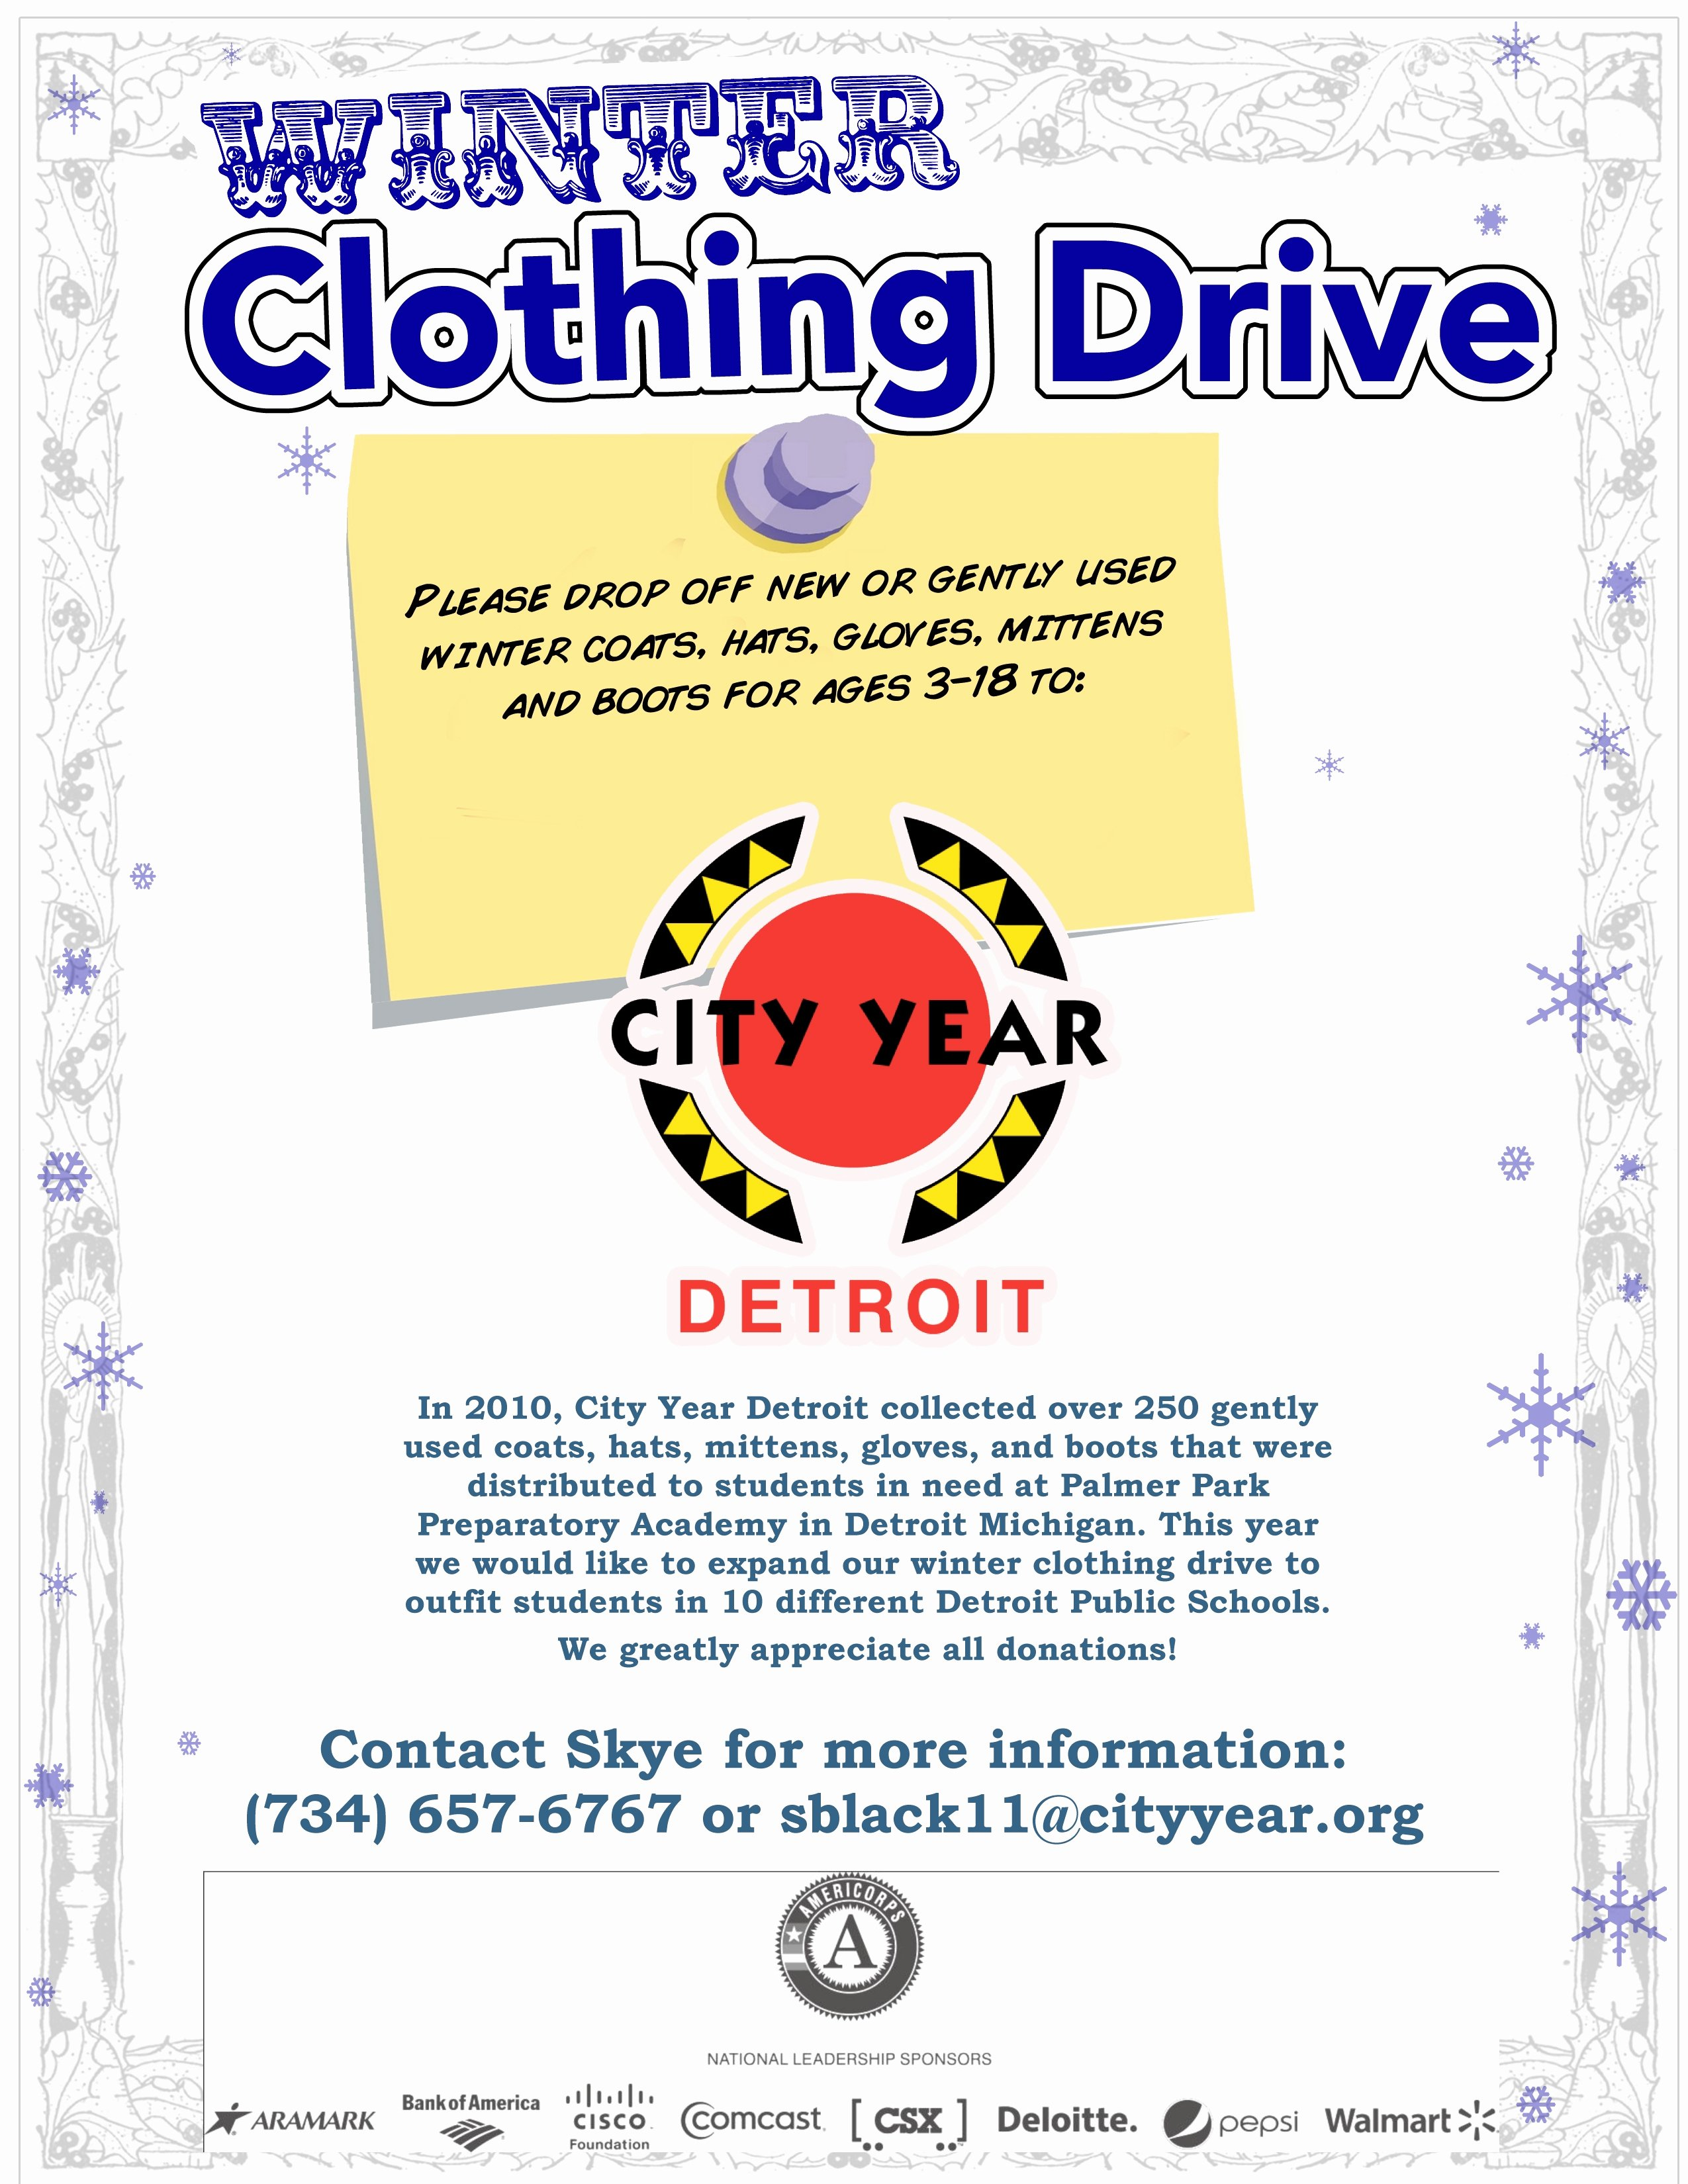 Clothing Drive Flyer Template Awesome Clothing Drive Flyer Template Portablegasgrillweber